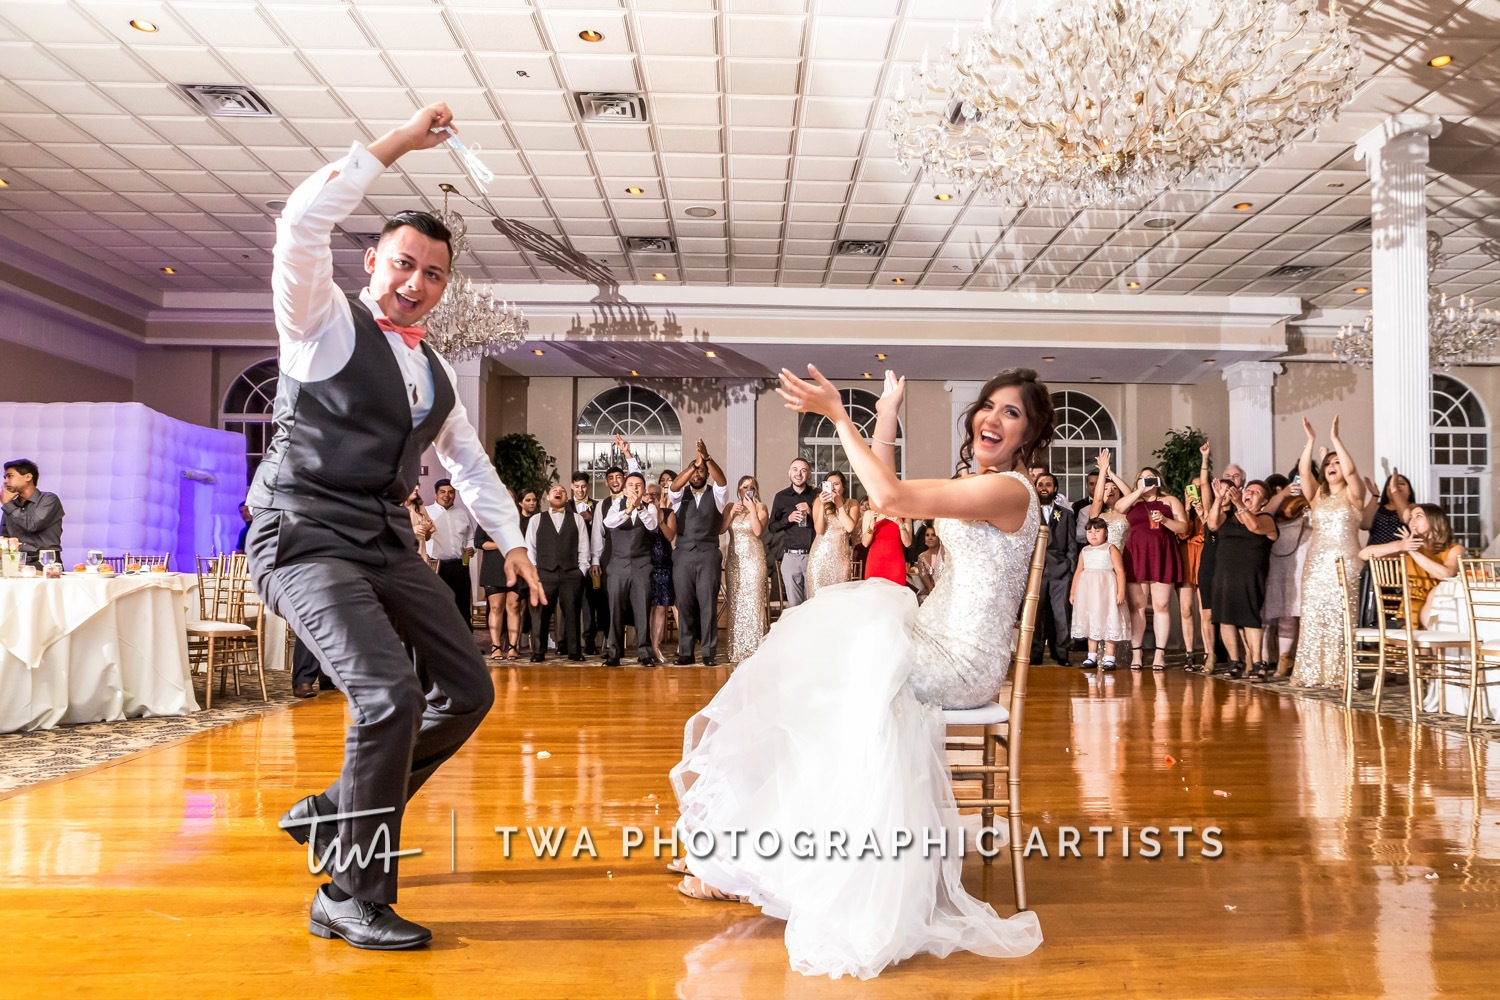 Chicago-Wedding-Photographer-TWA-Photographic-Artists-Abbington-Banquets_Carrillo_Carbajal_MiC-0893